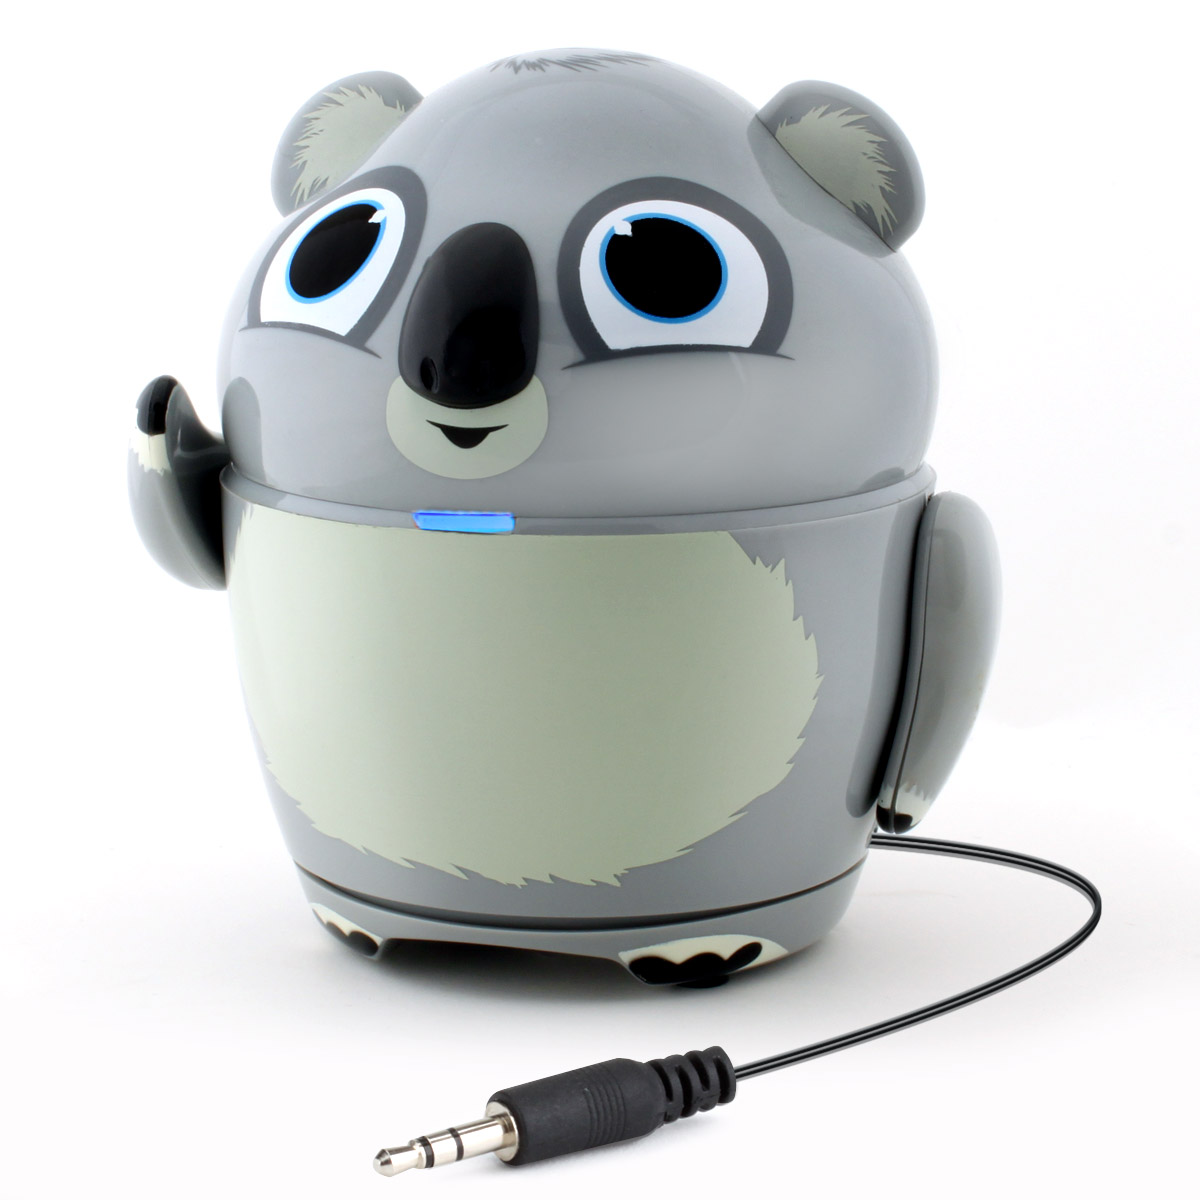 "GOgroove 3.5mm AUX Portable Koala Speaker Kit with Rechargeable Battery & Built-in 3.5mm Cord- Works with Dragon Touch 7"" , Orbo Jr. , Smartab STJR76PK 7'' & More Kids Tablets"